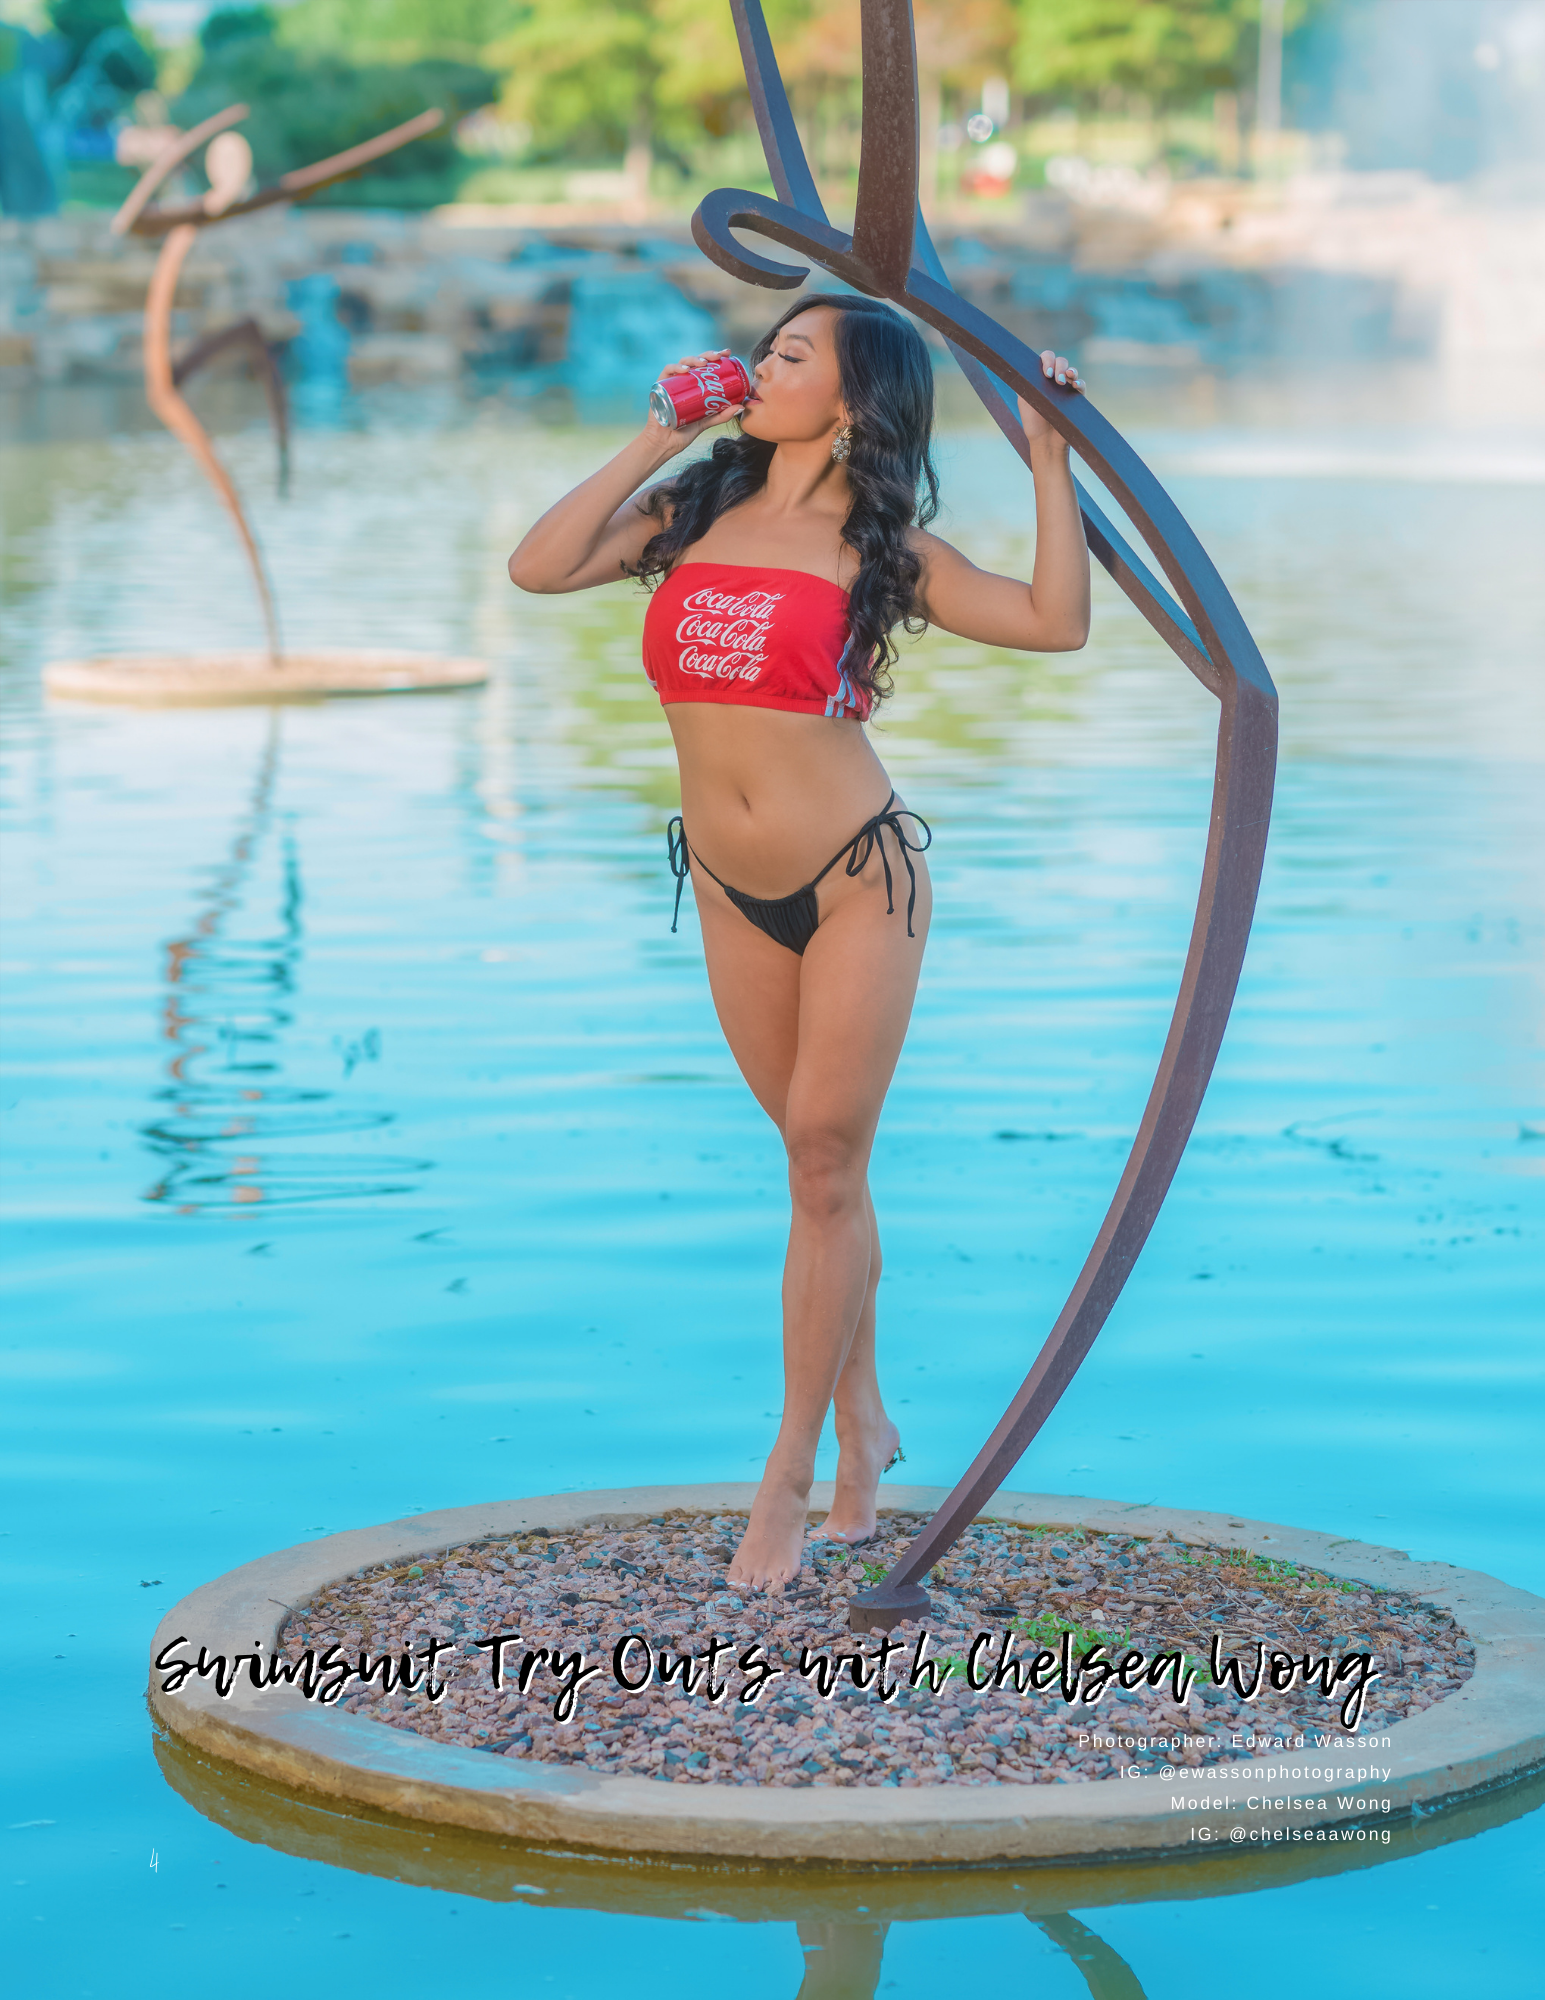 Swimsuit Try-Outs with Chelsea Wong